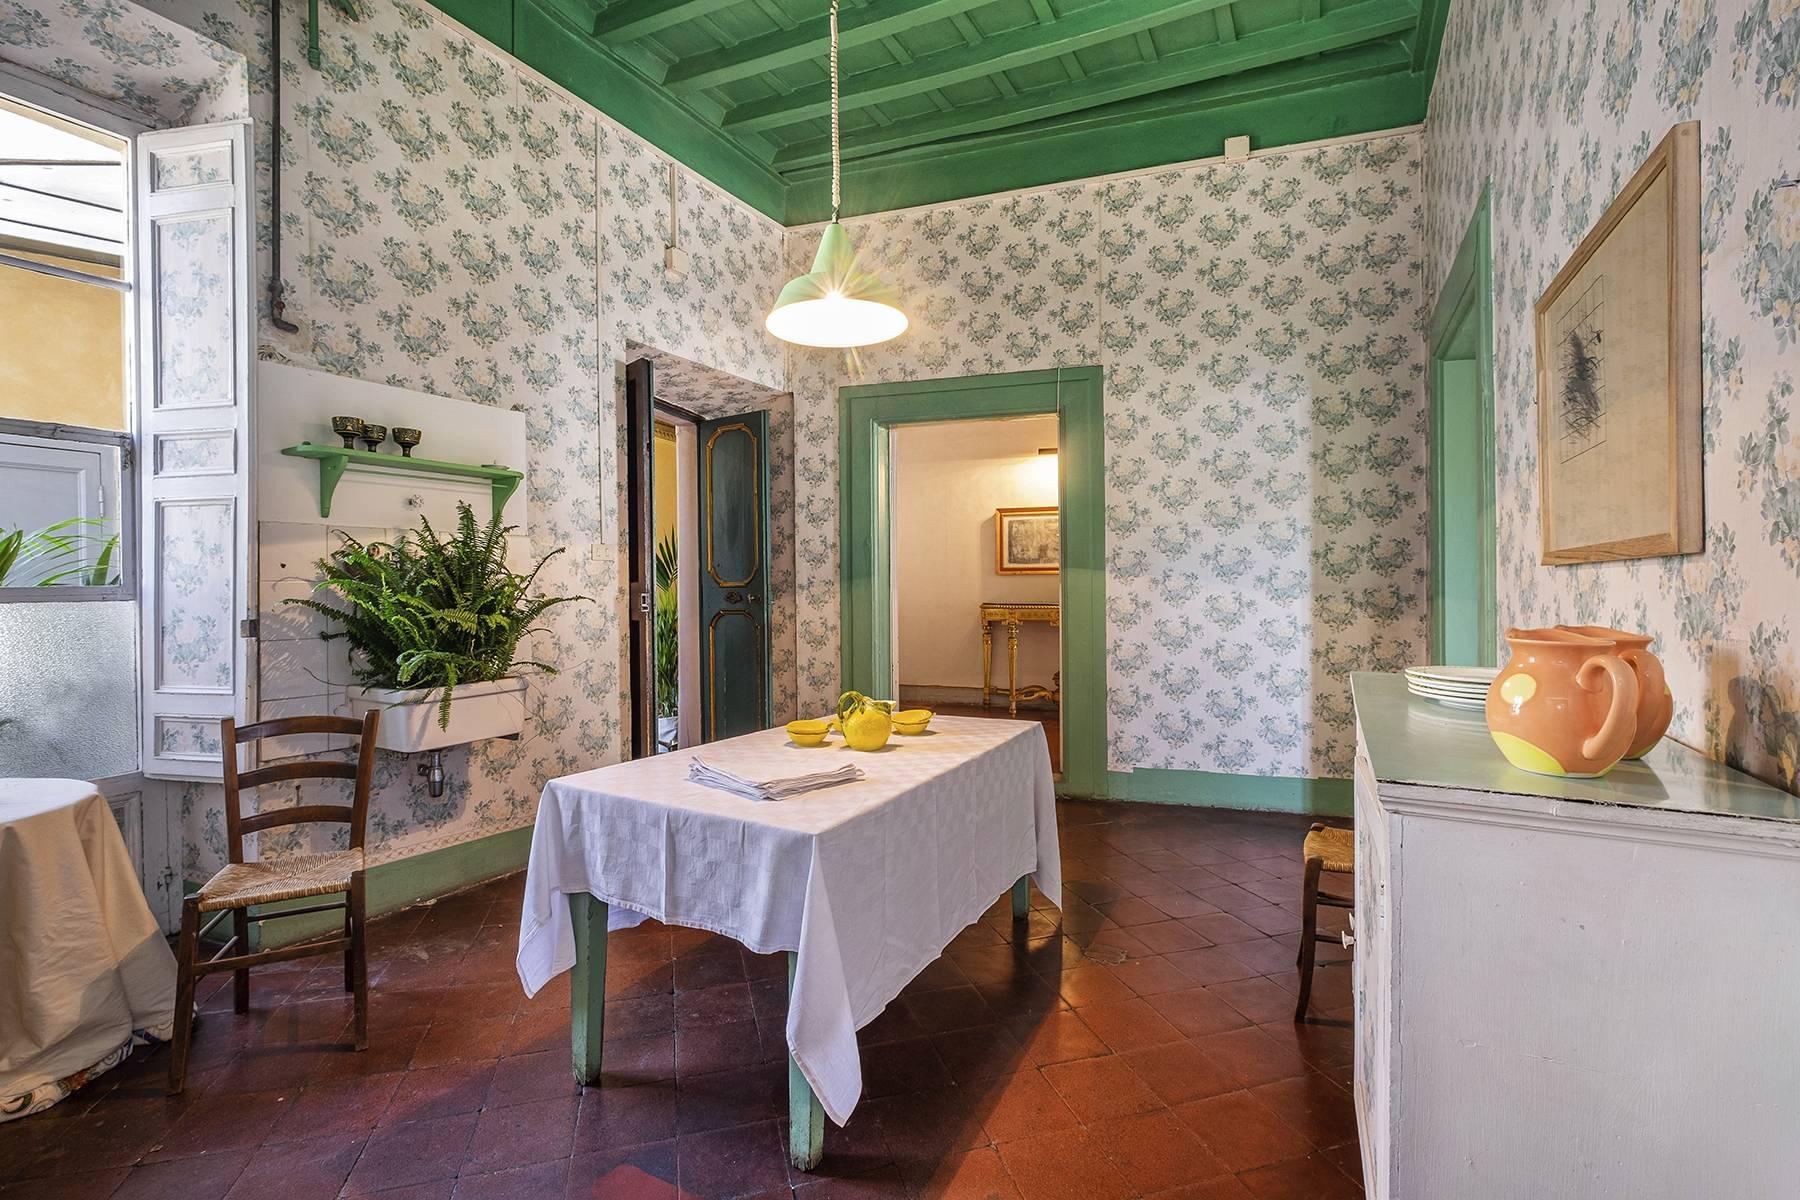 Magnificent apartment in historical property - 22